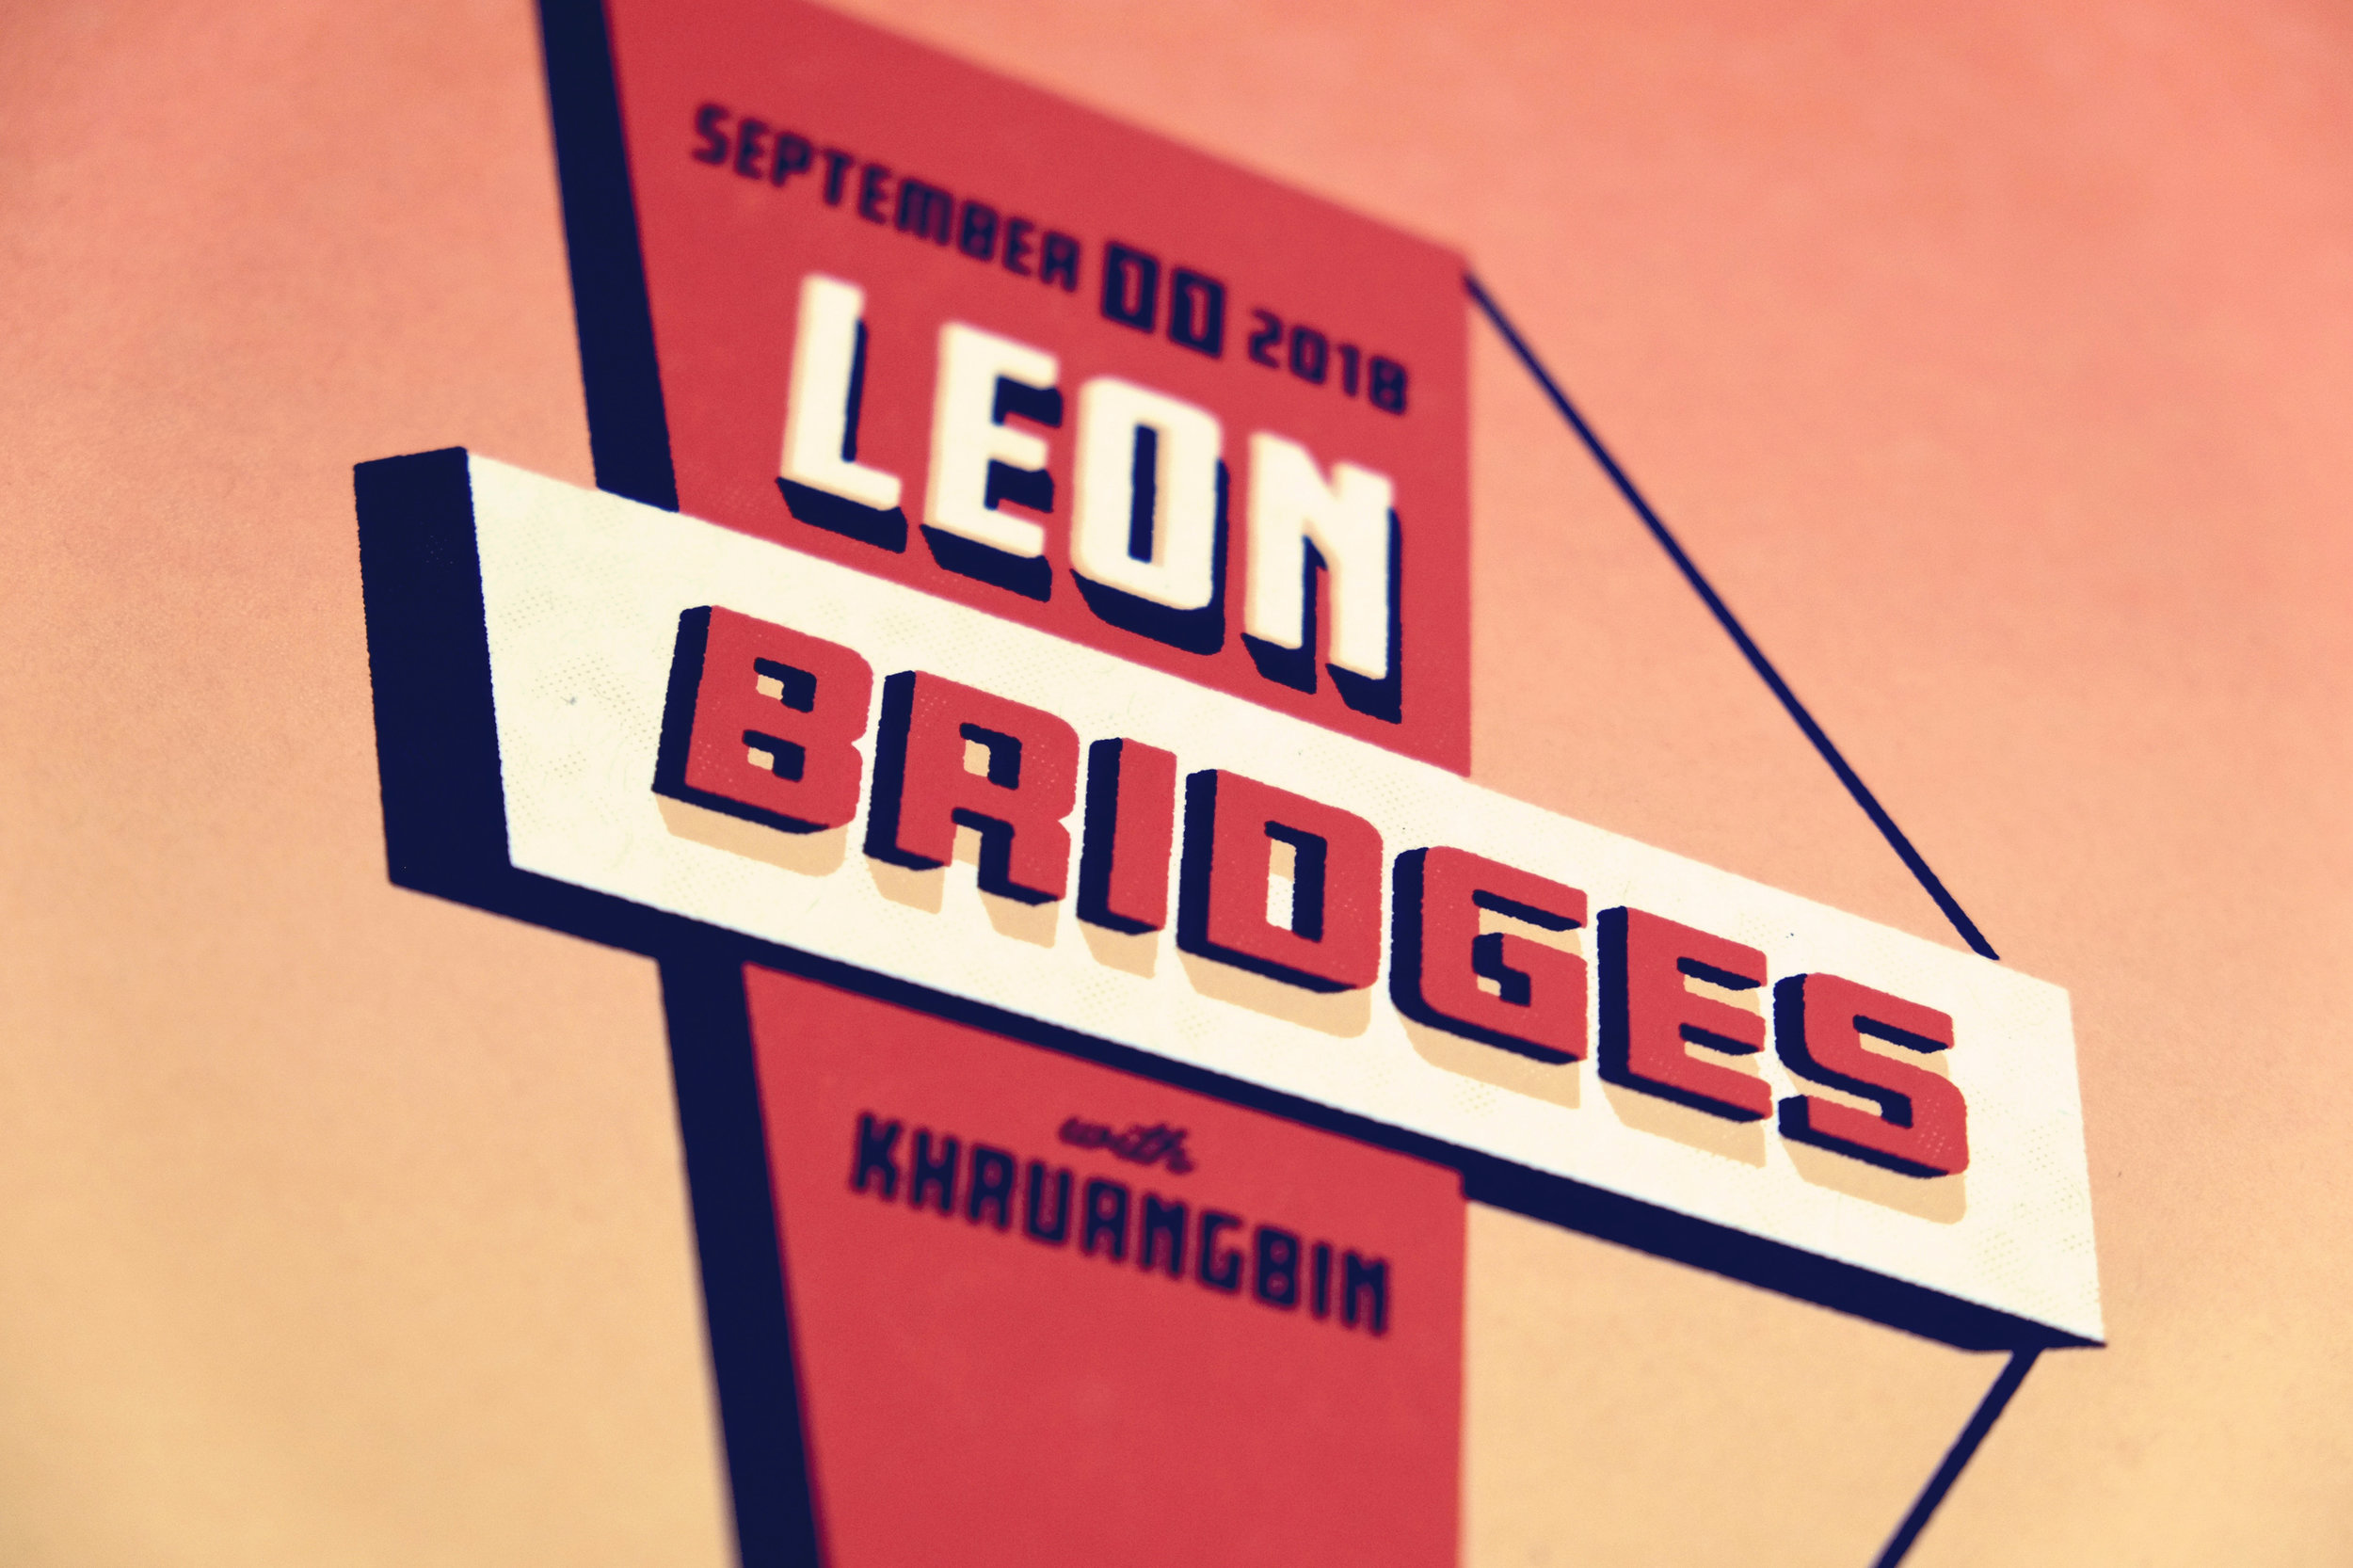 leon_bridges_pic_4.jpg